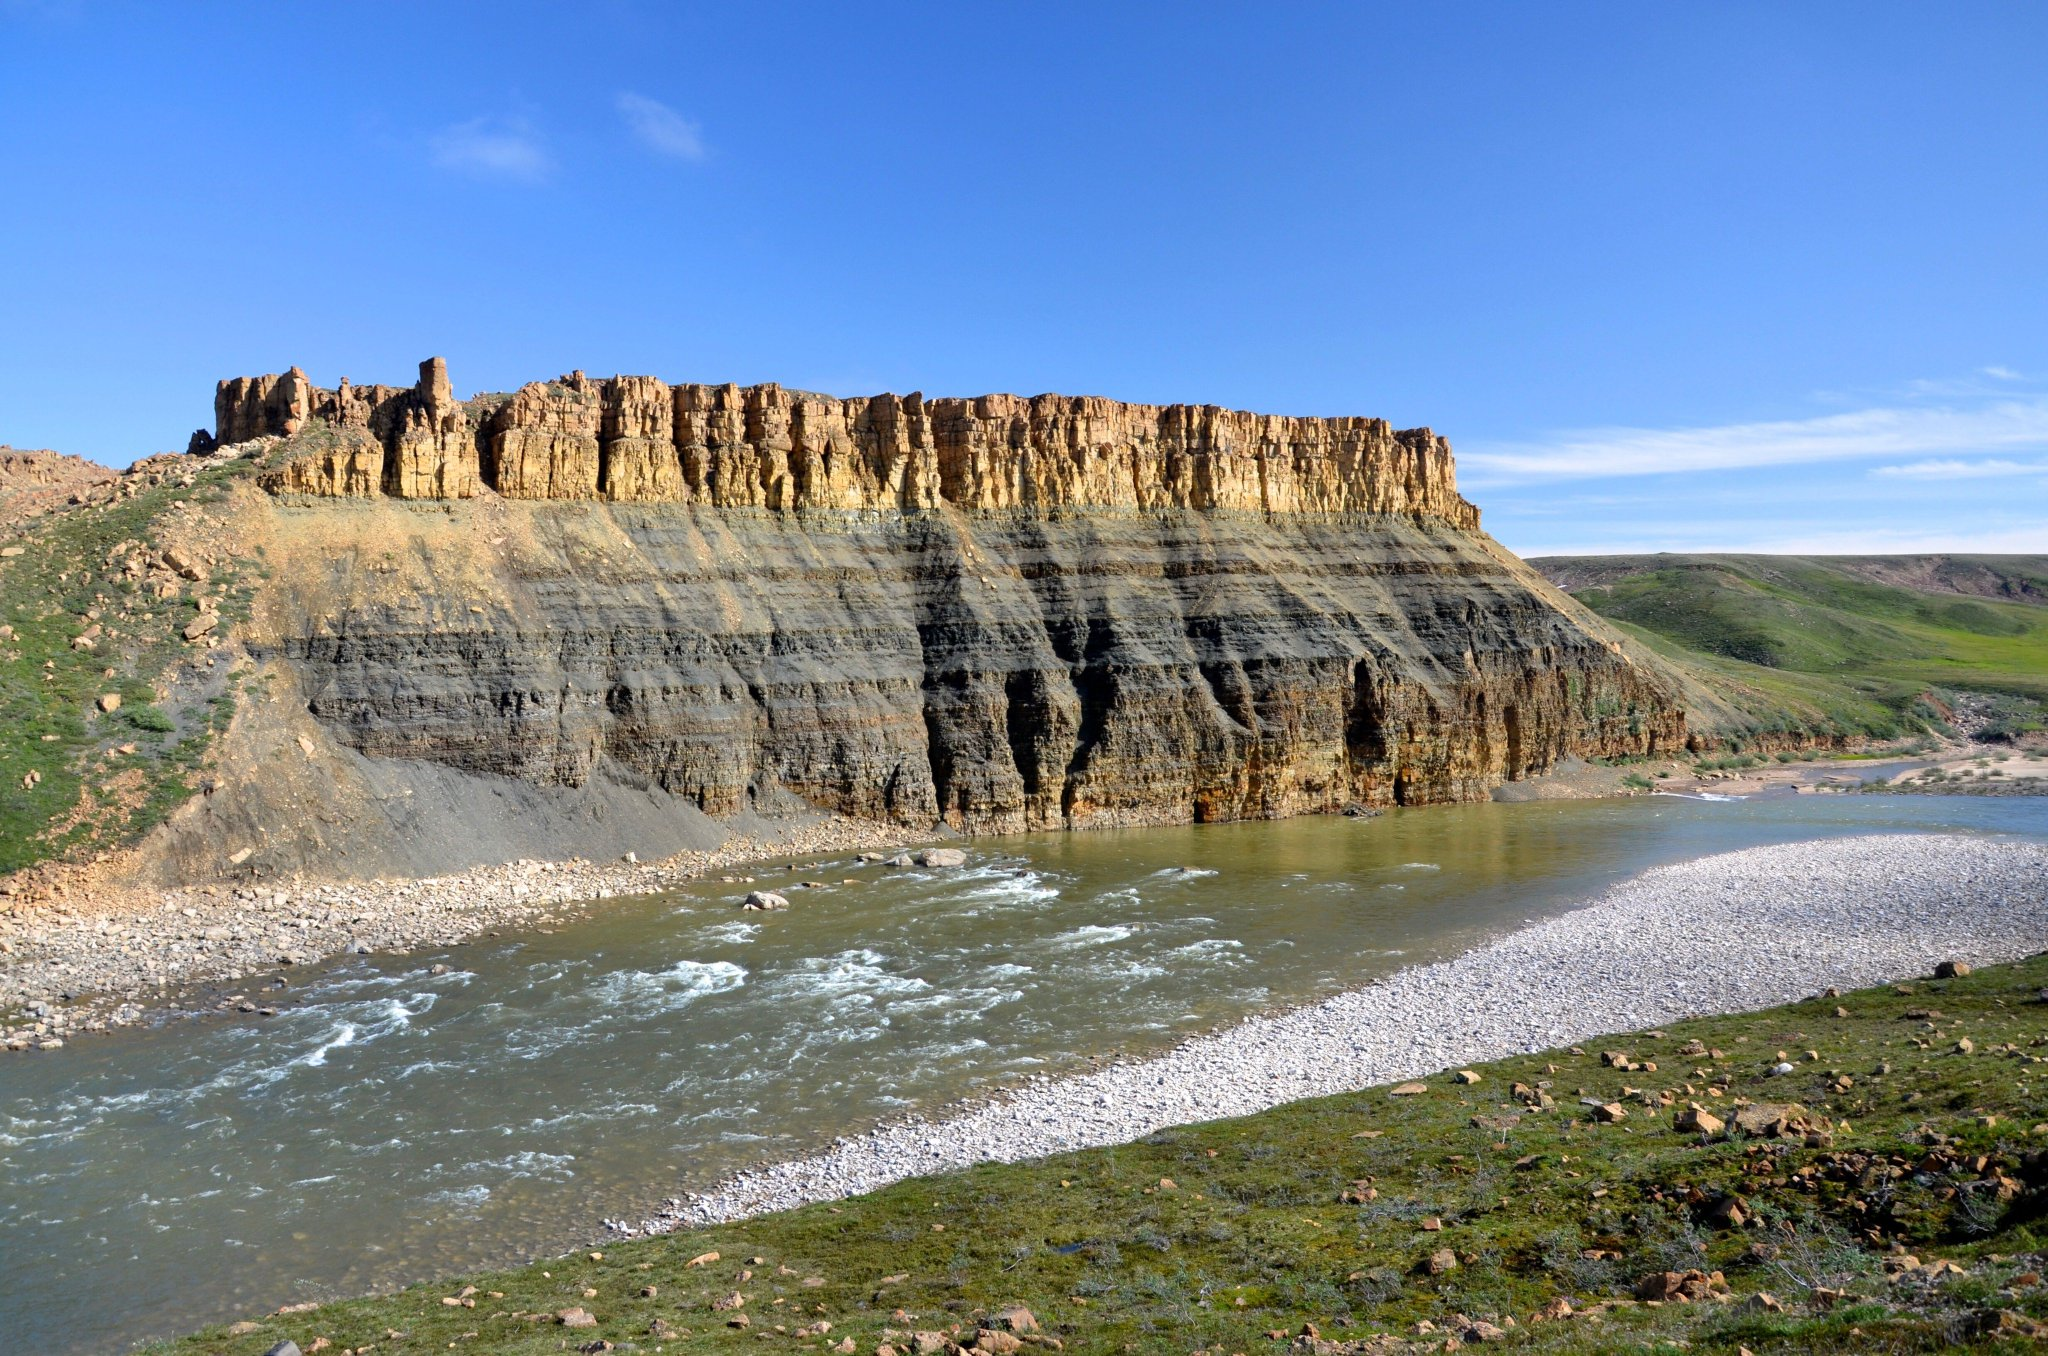 This beautiful exposure, located on the Hornaday River in Tuktut Nogait National Park, NWT, is about 80 m thick and comprises marine quartz arenite grading upward into shales abruptly but conformably overlain by orange-weathering stromatolitic dolostone. #PhotoOfTheWeek https://t.co/E39sTiBJ44